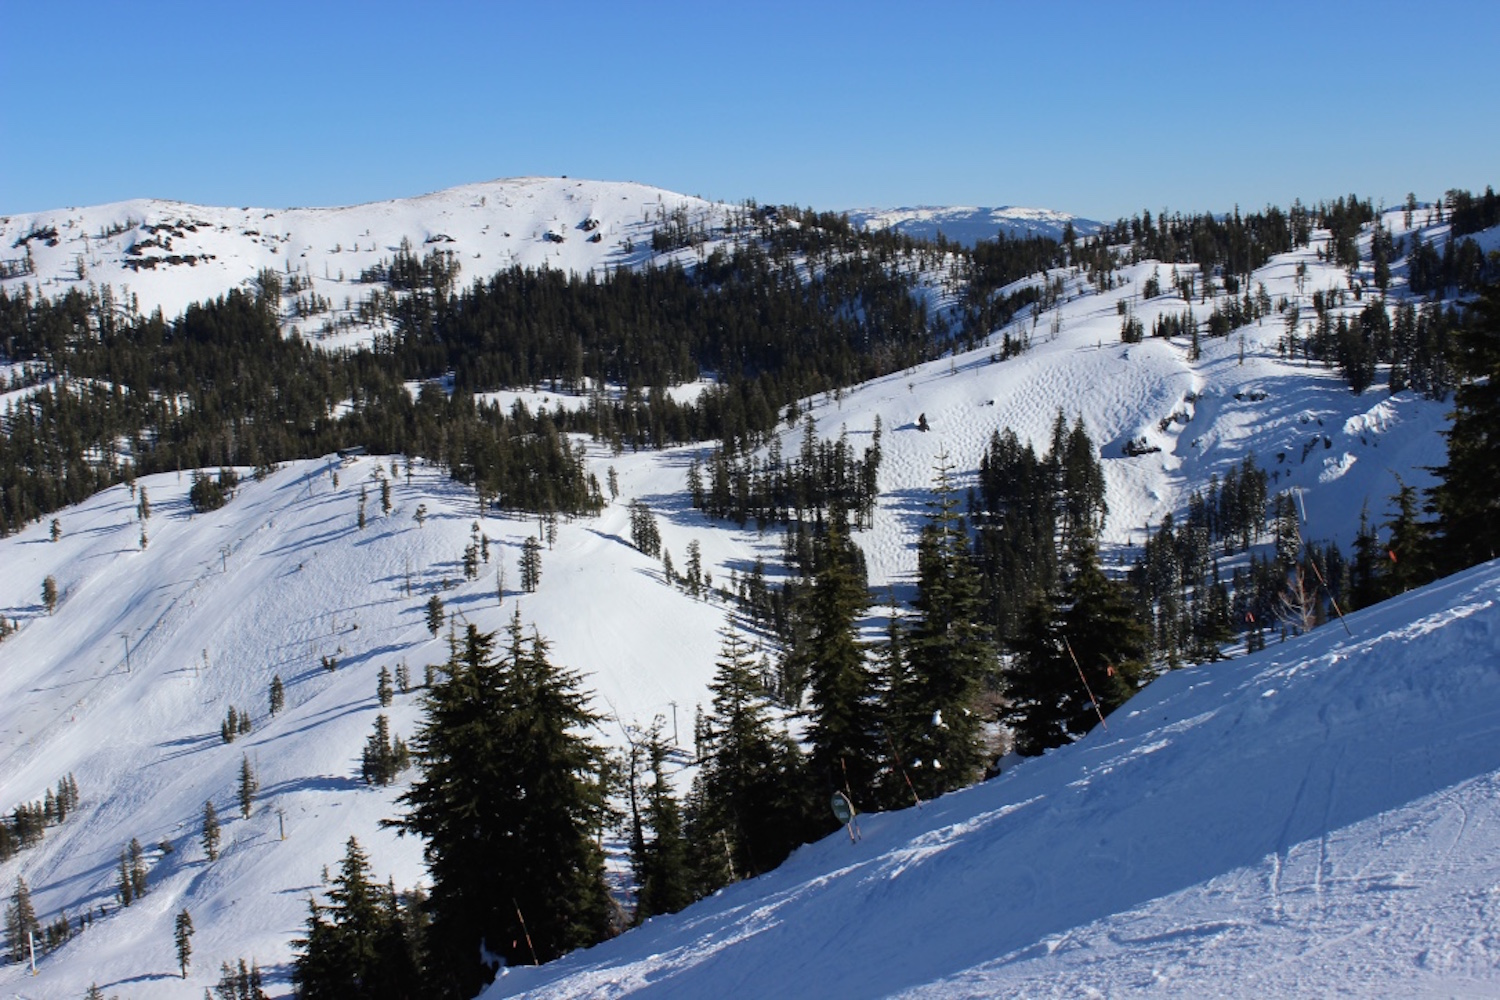 skiing or boarding at Mt. Bachelor or HooDoo copy.jpg